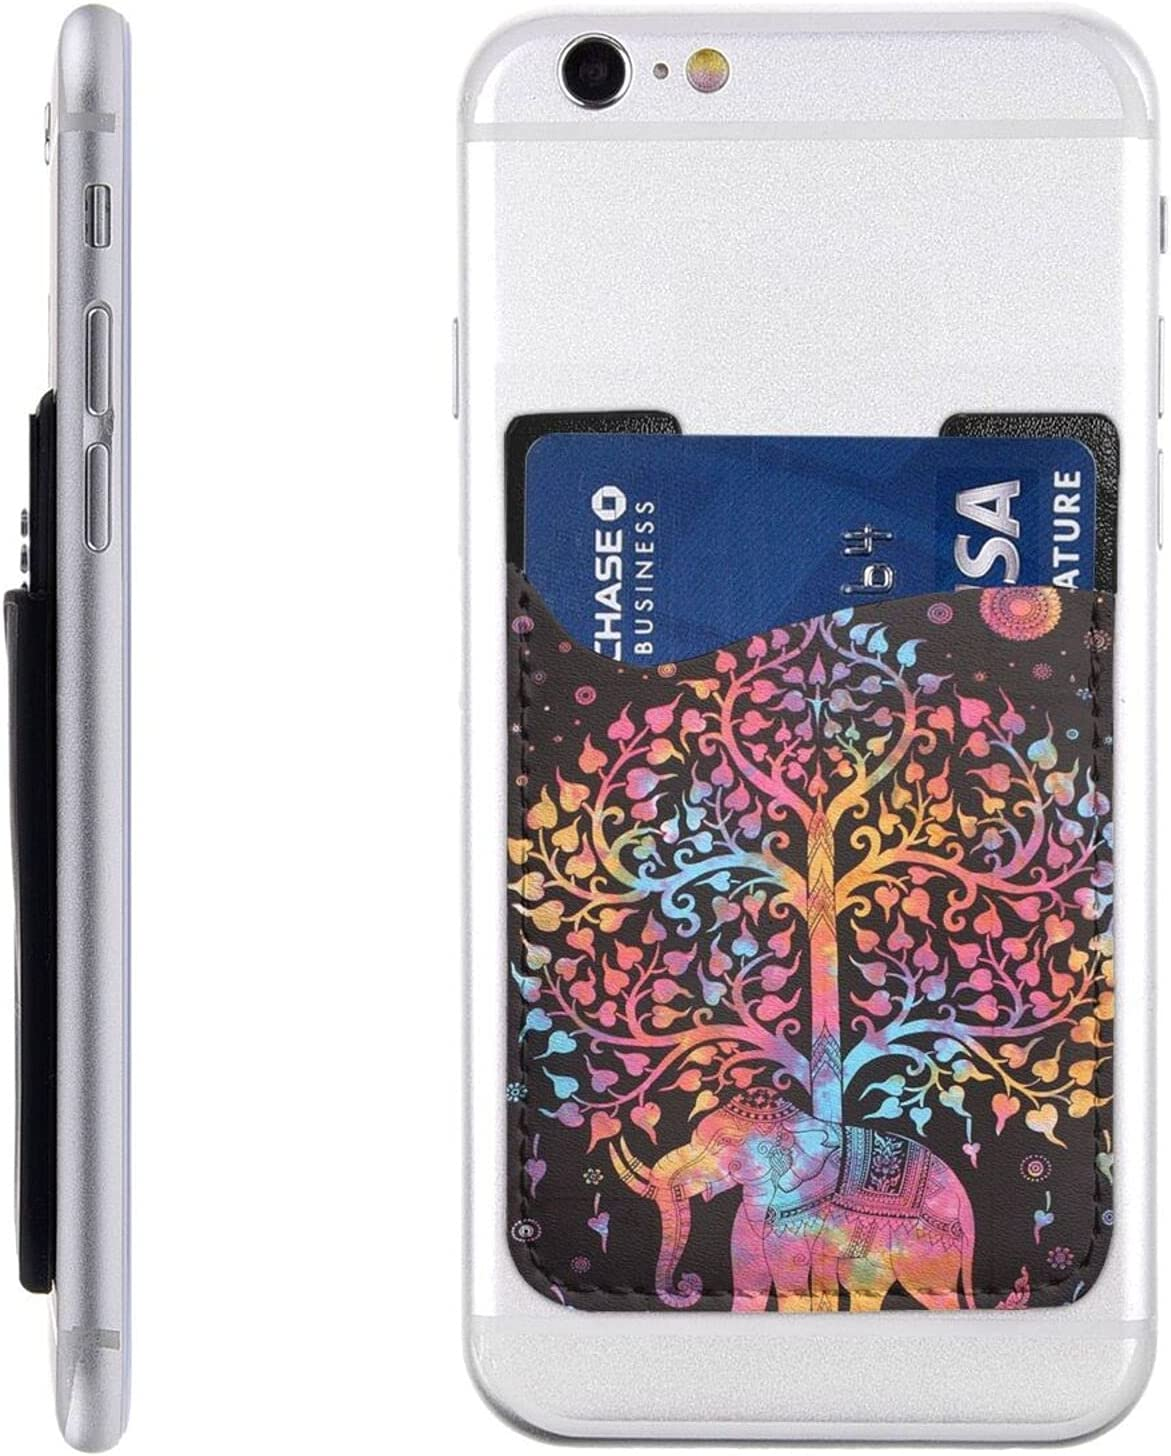 Tree of Life and Tie Dye Phone Card Elephant Bombing free shipping S Cell Holder supreme